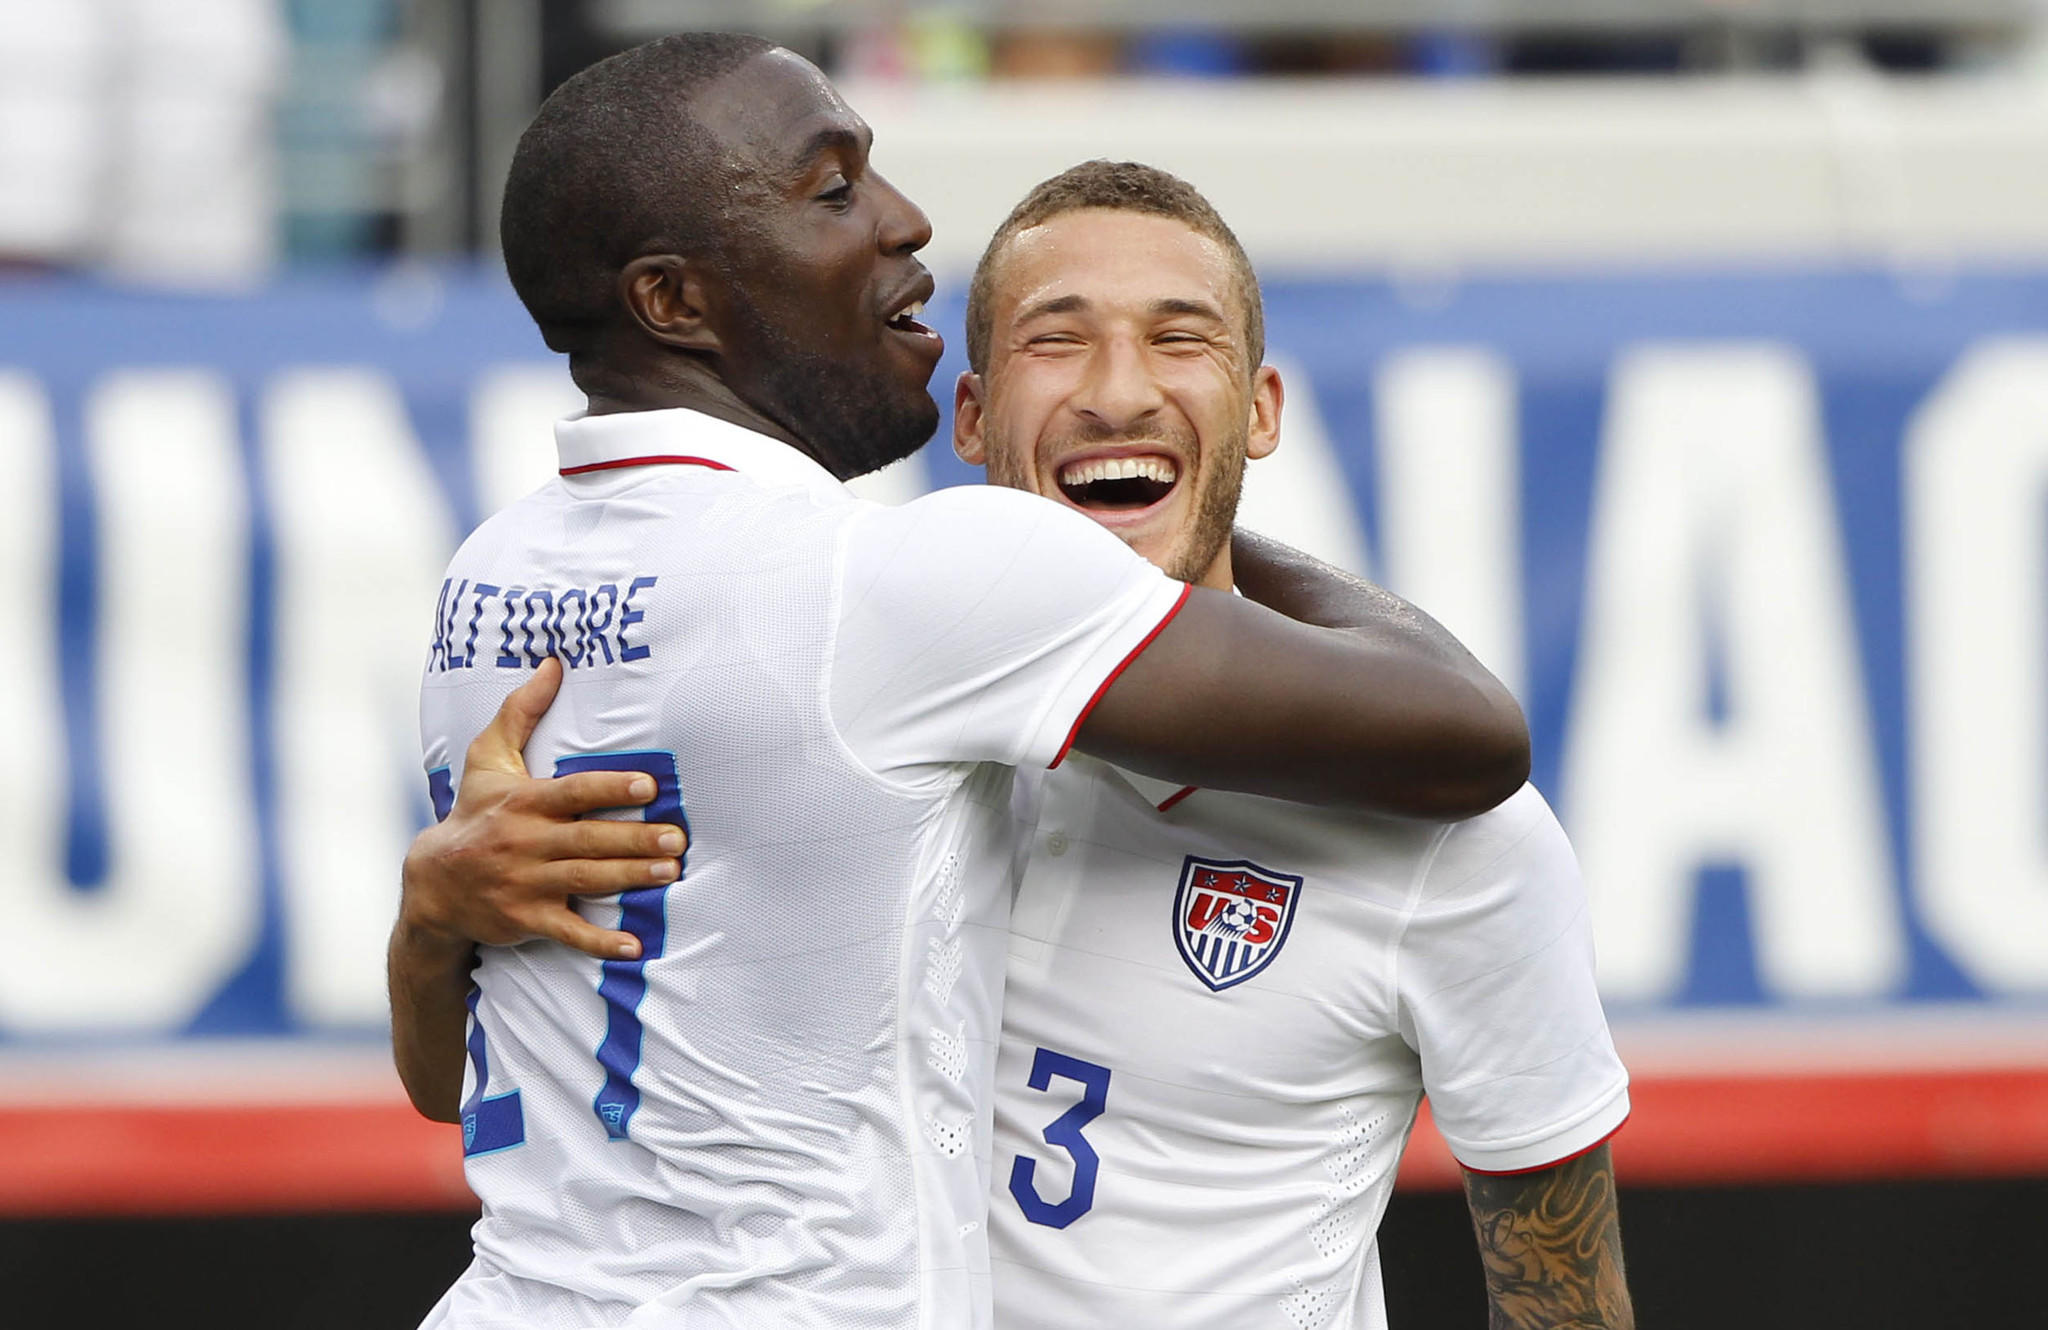 United States forward Jozy Altidore (17) is congratulated by defender Fabian Johnson (23) after Altidore scored against the Nigeria at EverBank Field.